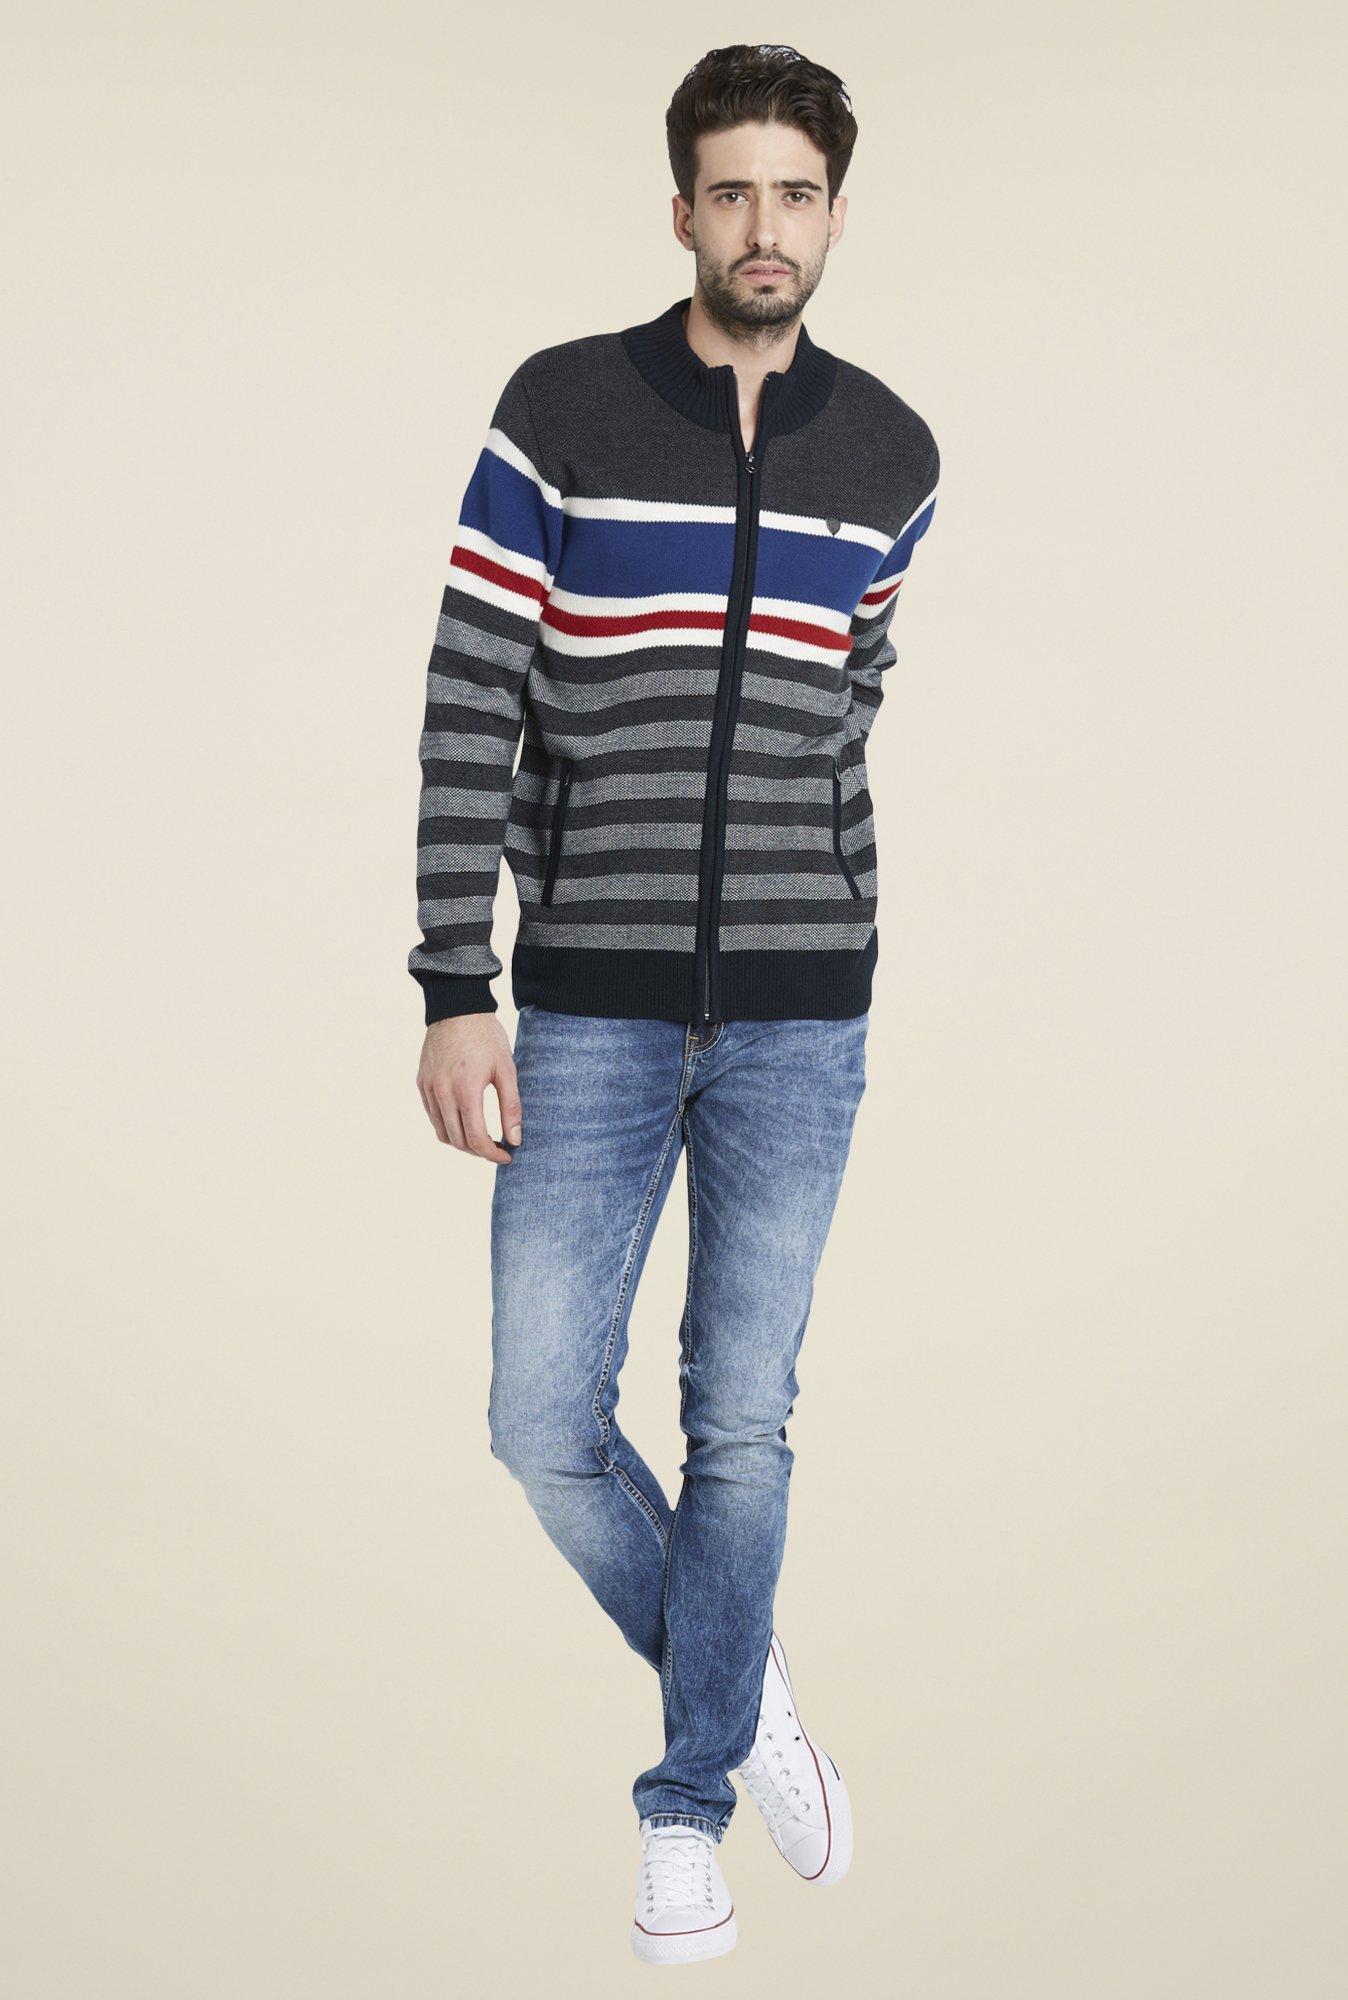 Globus Grey Cool Striped Jacket